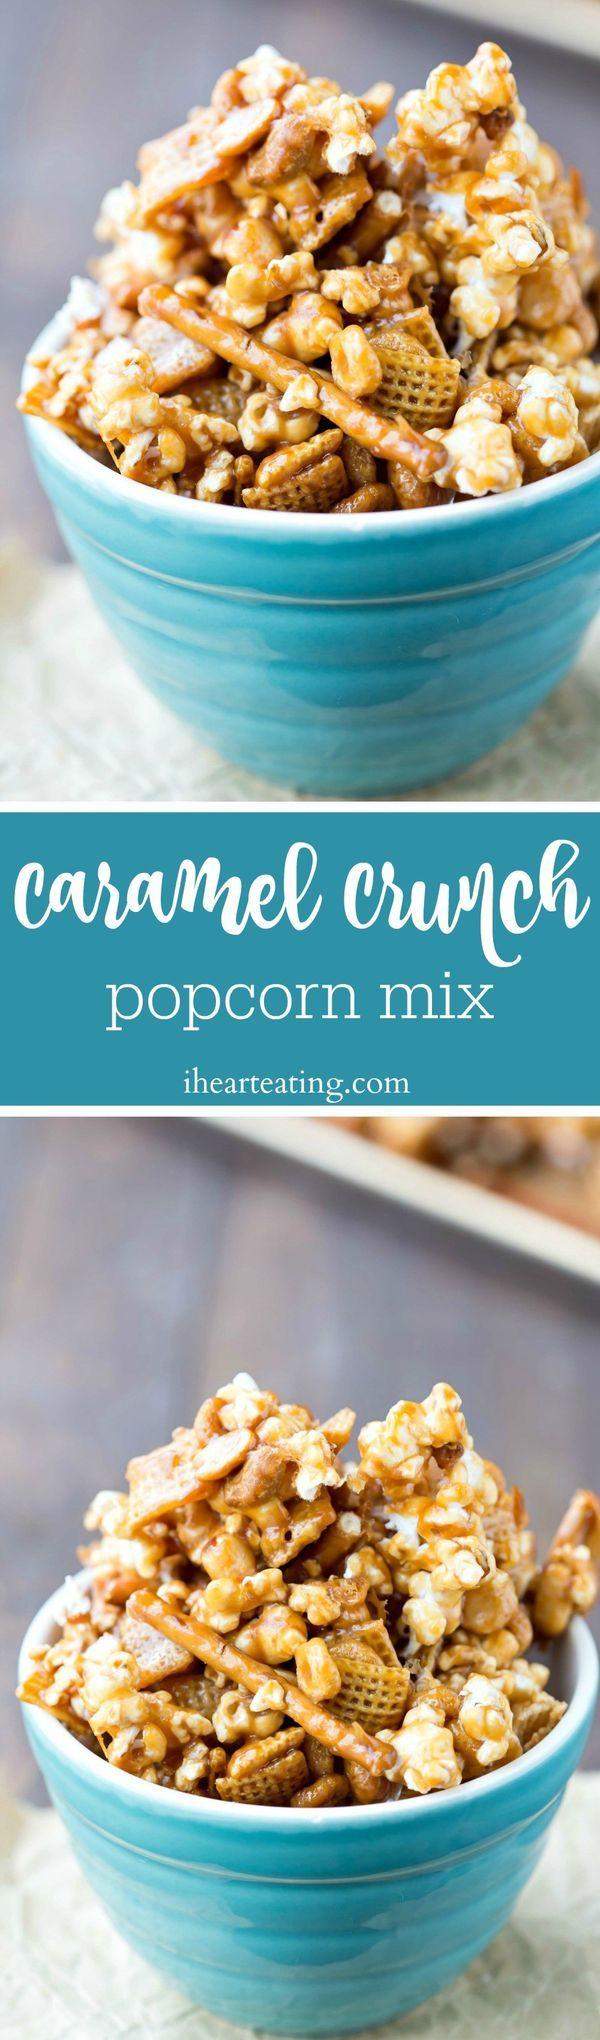 Caramel Crunch Popcorn Mix Recipe - made with popcorn, cereal, pretzels, and nuts, this snack mix is sure to please!